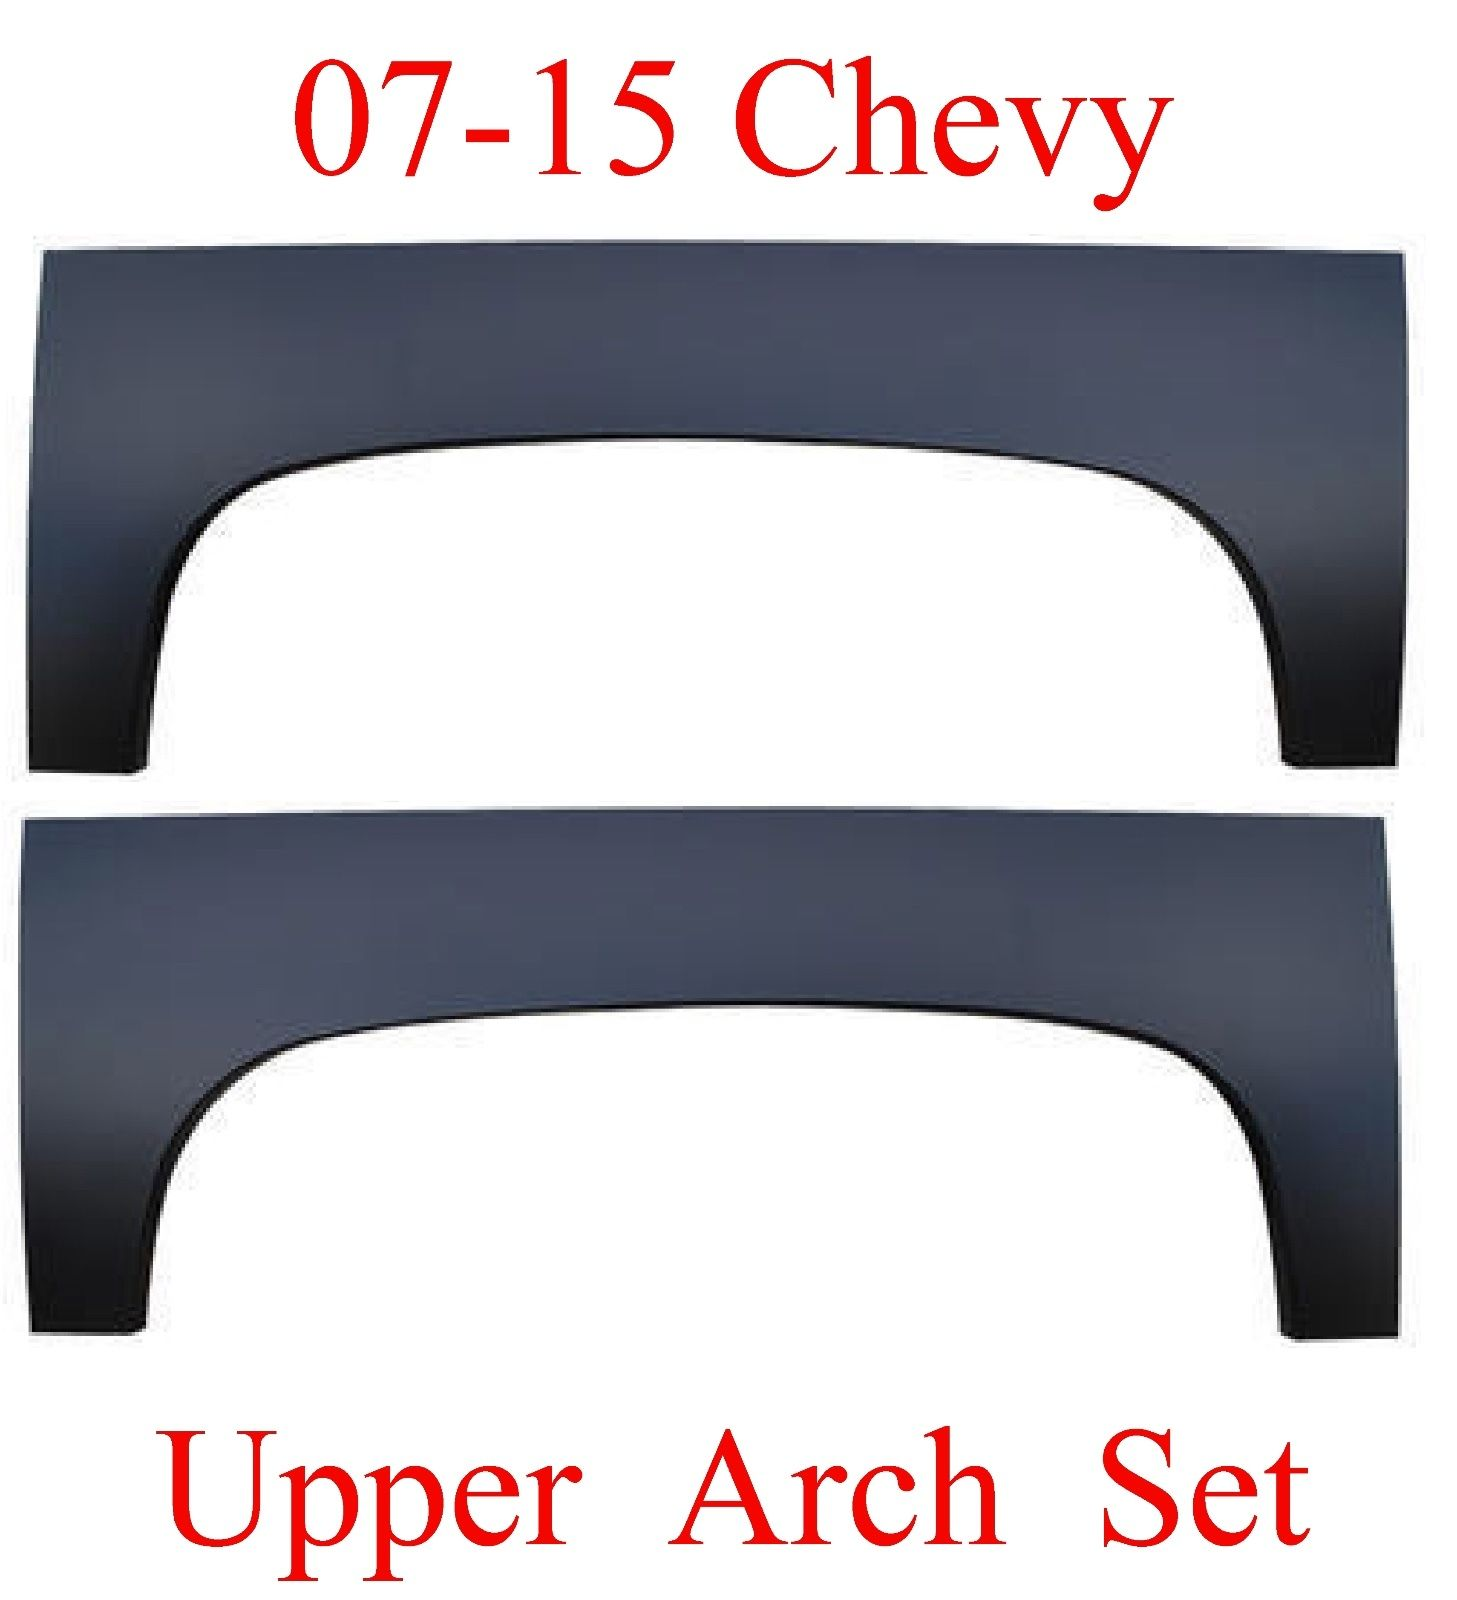 07-13 Upper Wheel Arch Set, Chevy Silverado